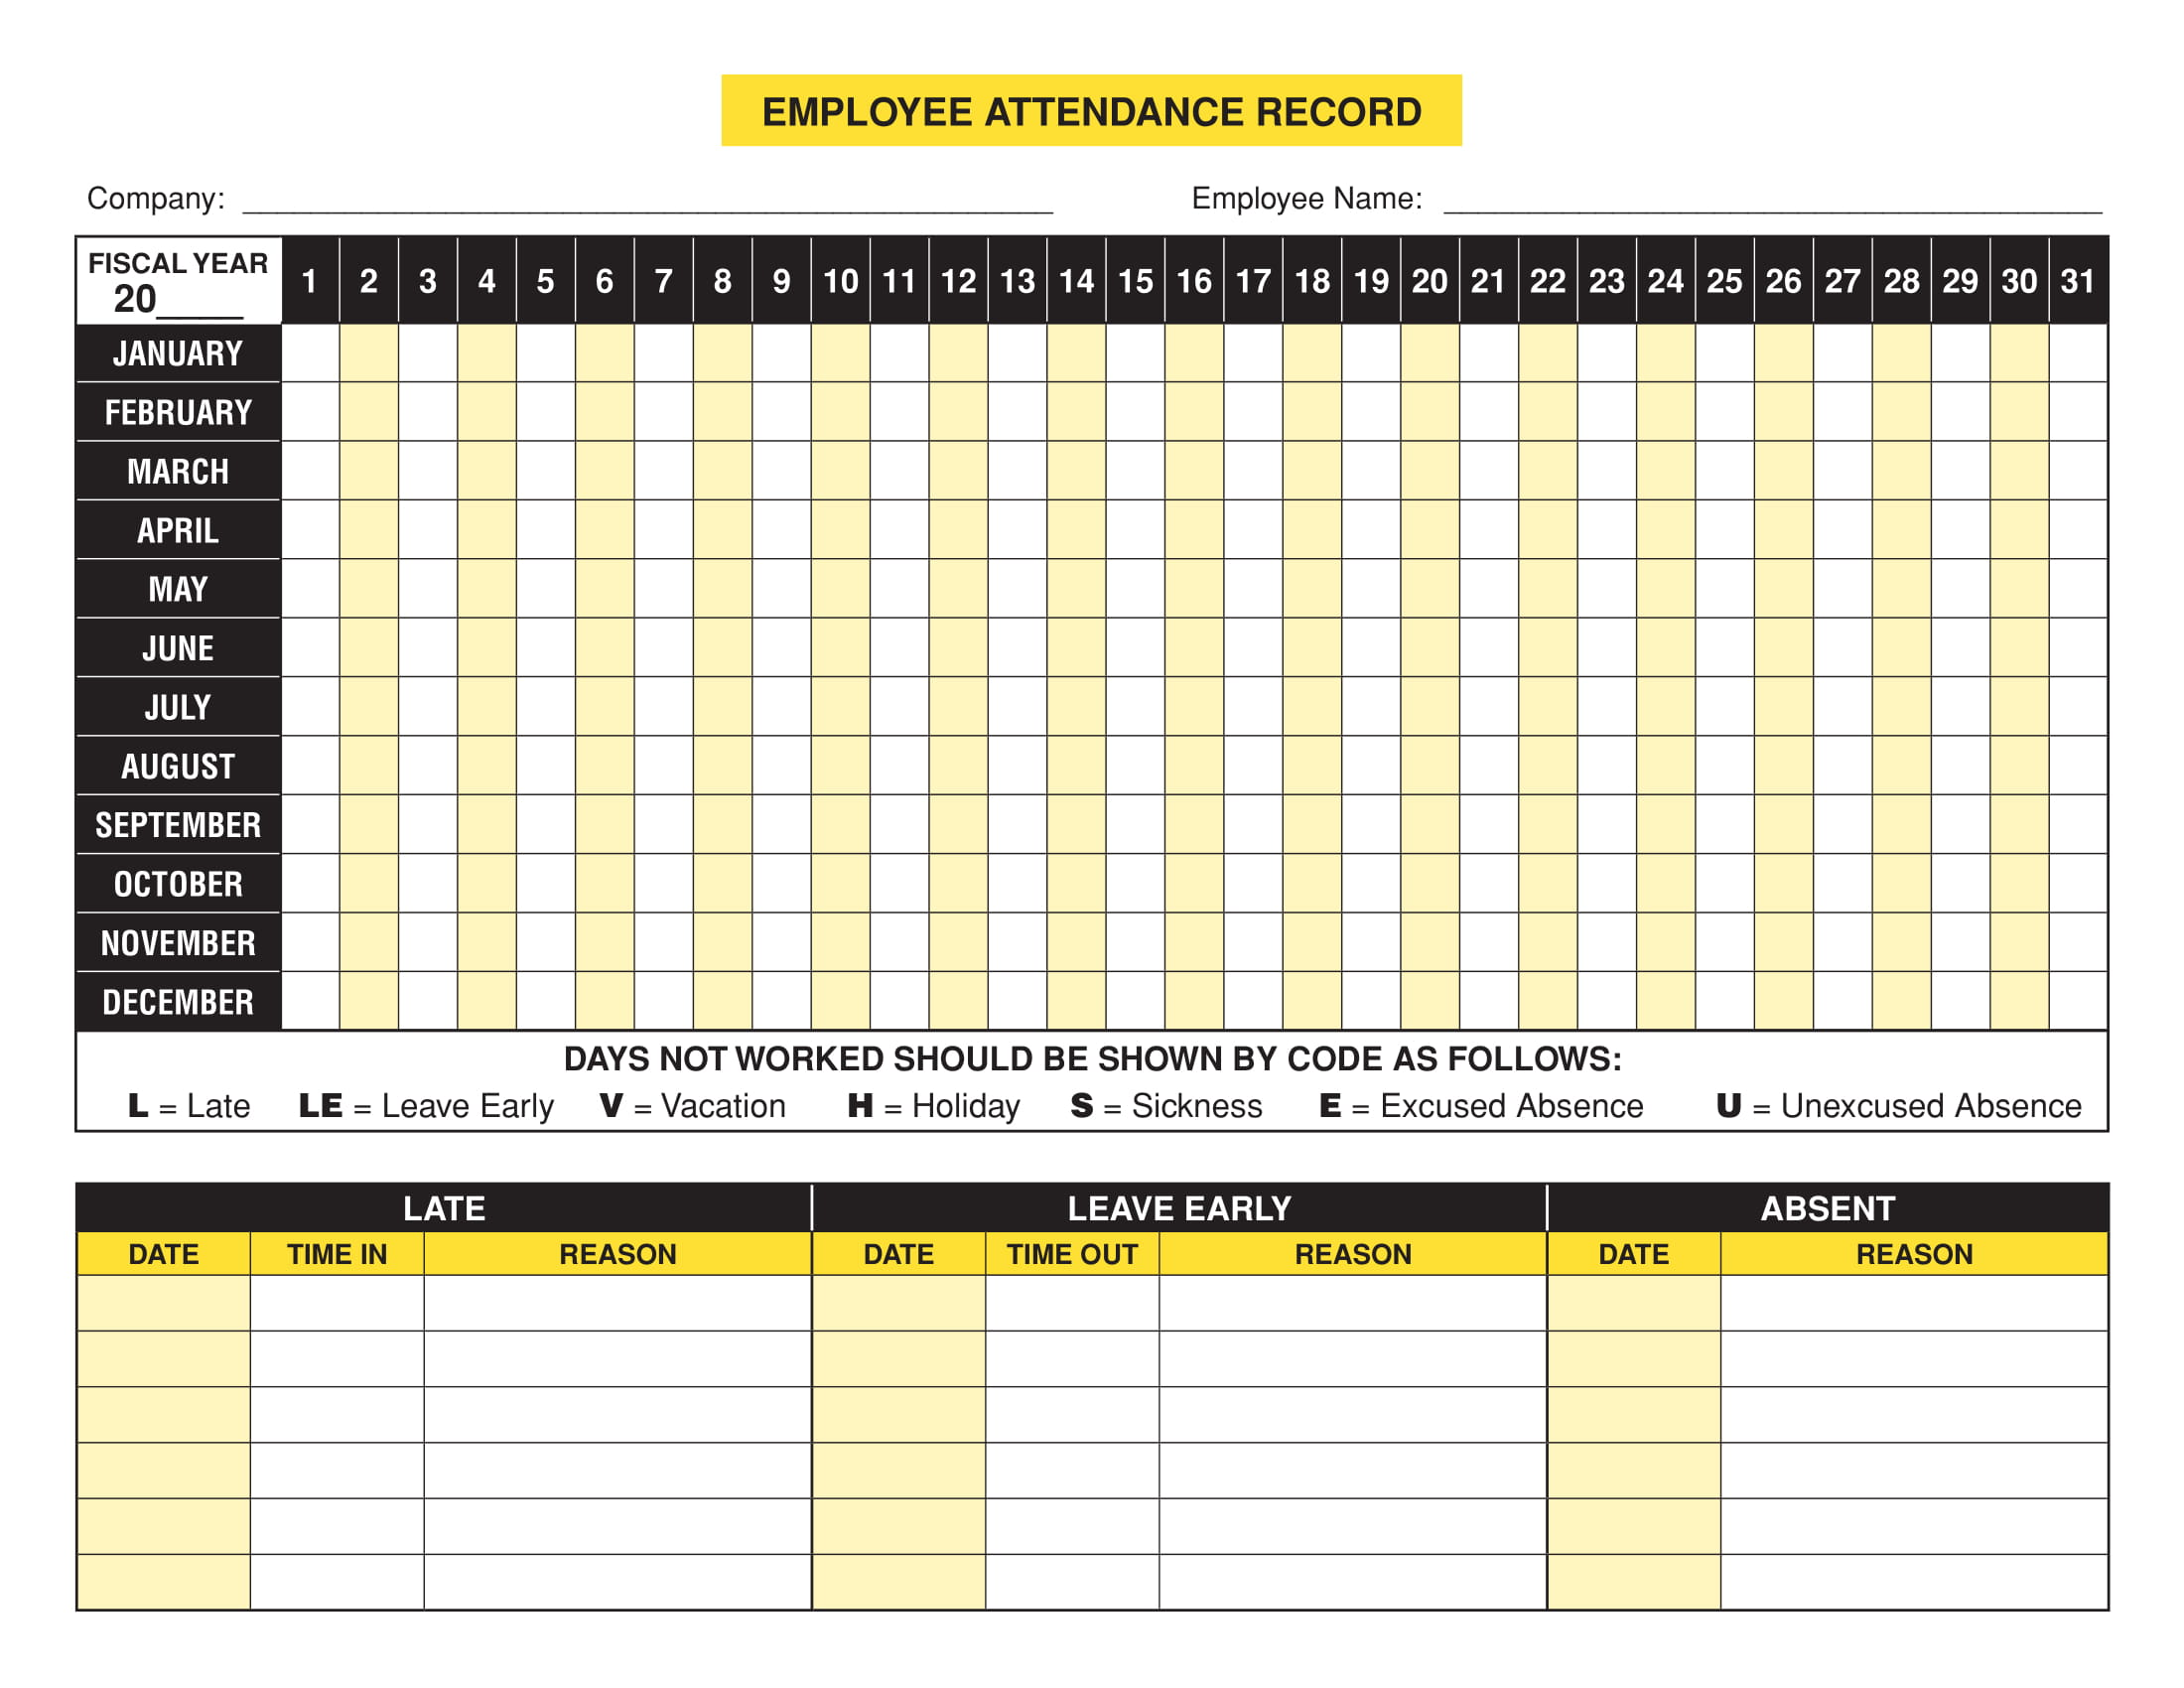 content analysis record sheet example